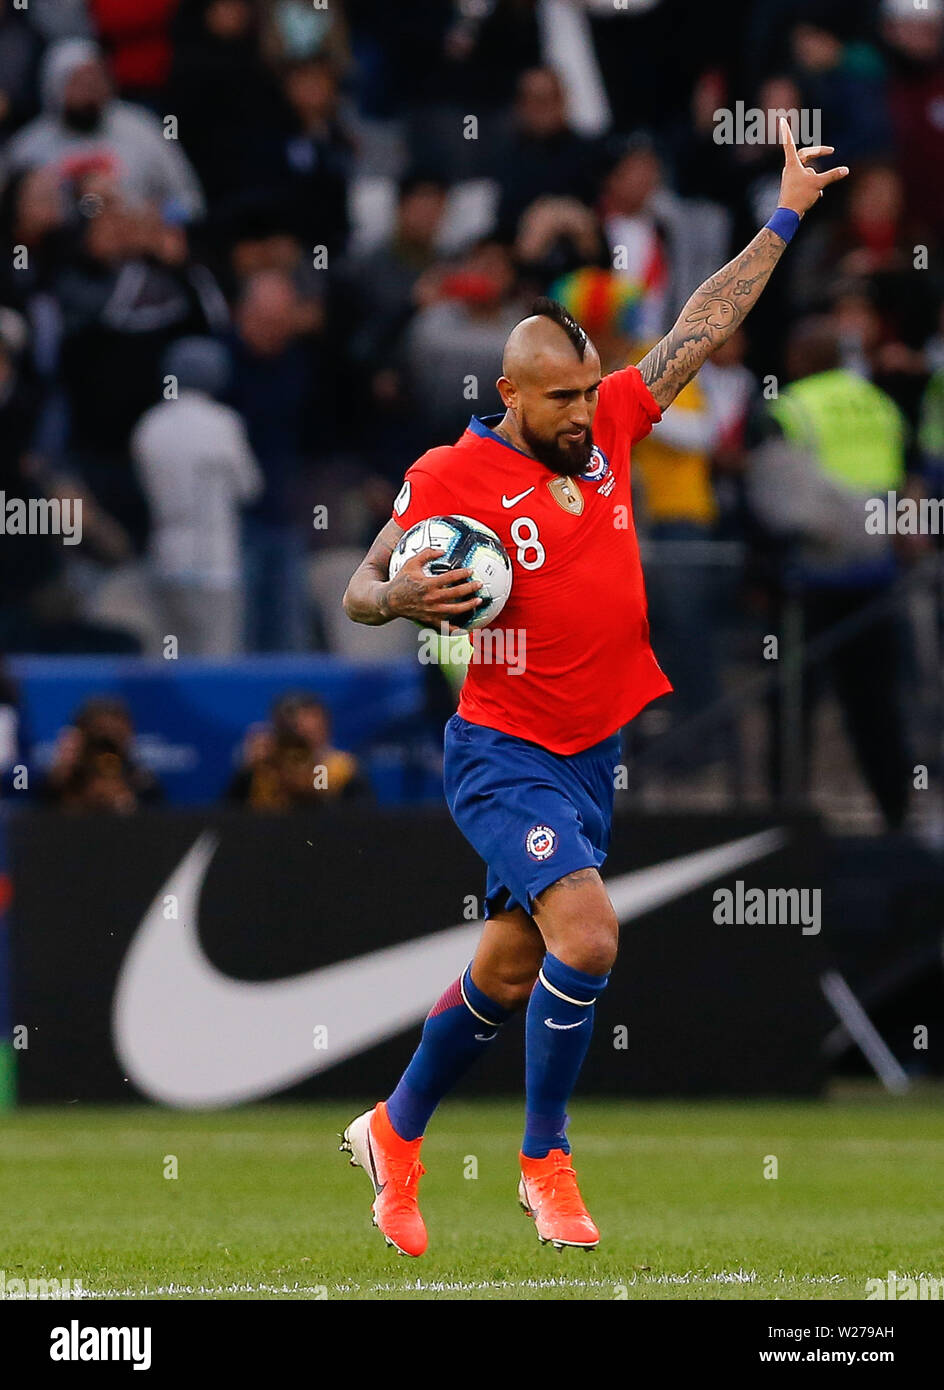 SÃO PAULO, SP - 06.07.2019: ARGENTINA VS. CHILE - Arturo Vidal of Chile celebrates after scoring a penalty in a penalty marked by VAR during a match between Argentina and Chile, valid for the dispute of the third place of Copa America 2019, held this Saturday (06) at the Corinthians Arena in São Paulo, SP. (Photo: Marcelo Machado de Melo/Fotoarena) - Stock Image